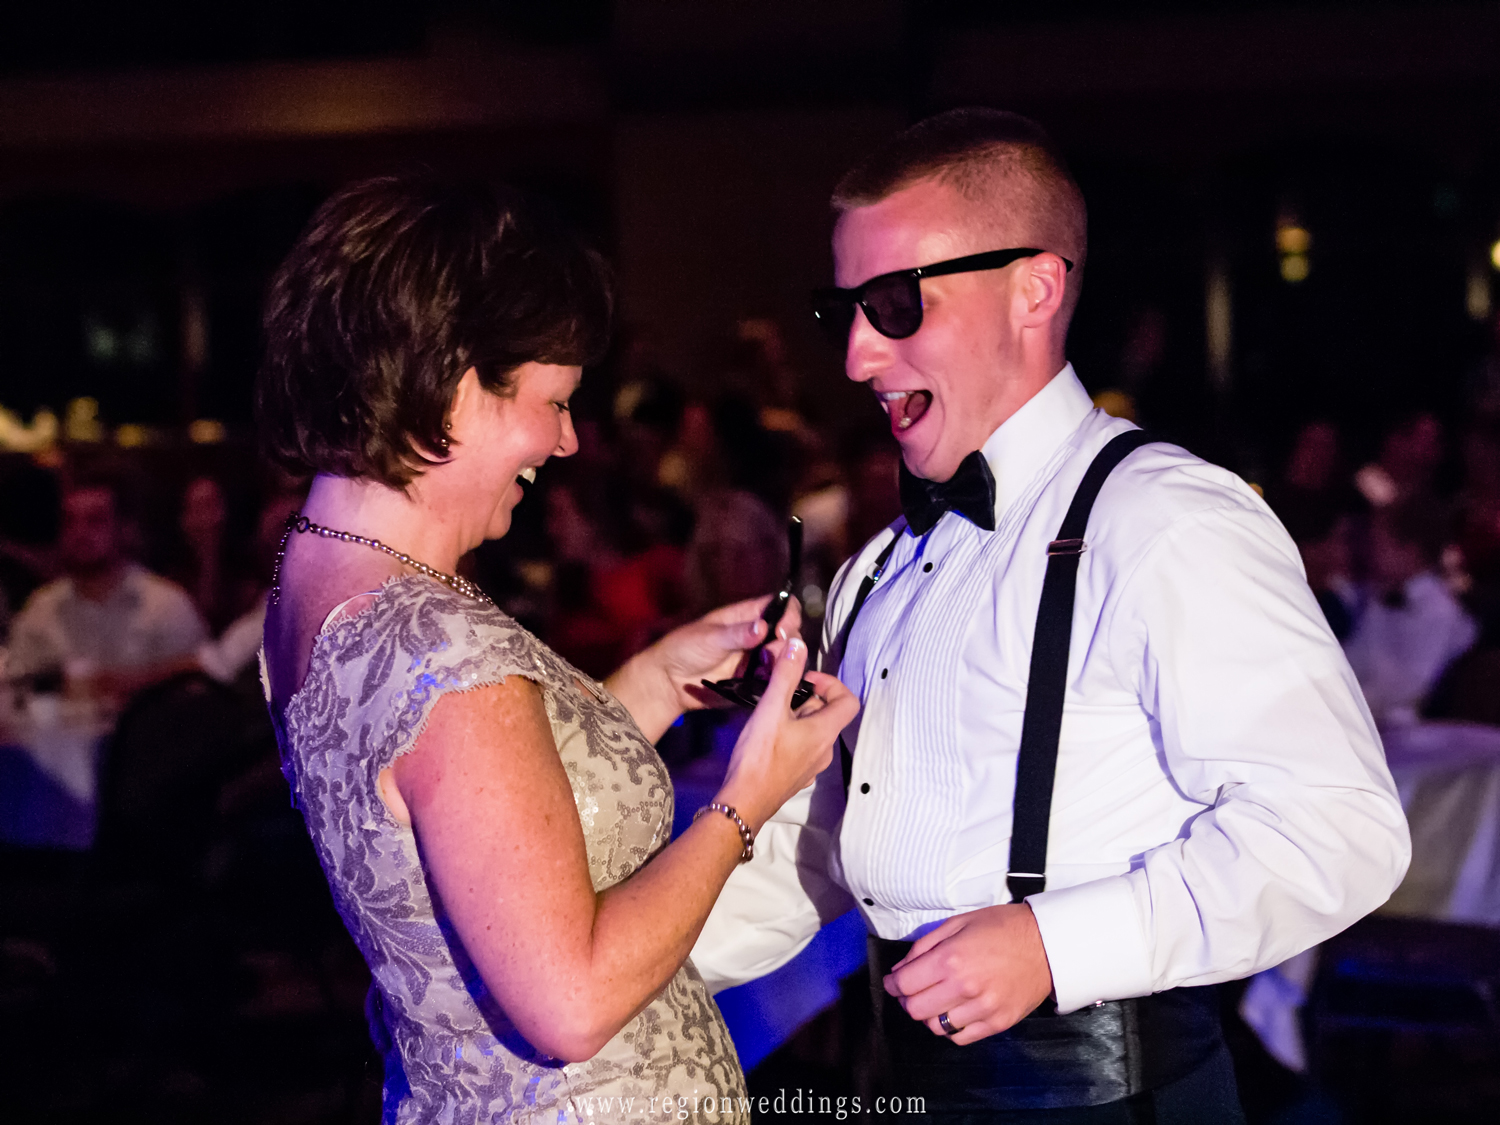 A candid wedding photo of the groom and his mom wear sunglasses as they dance together at his wedding reception.